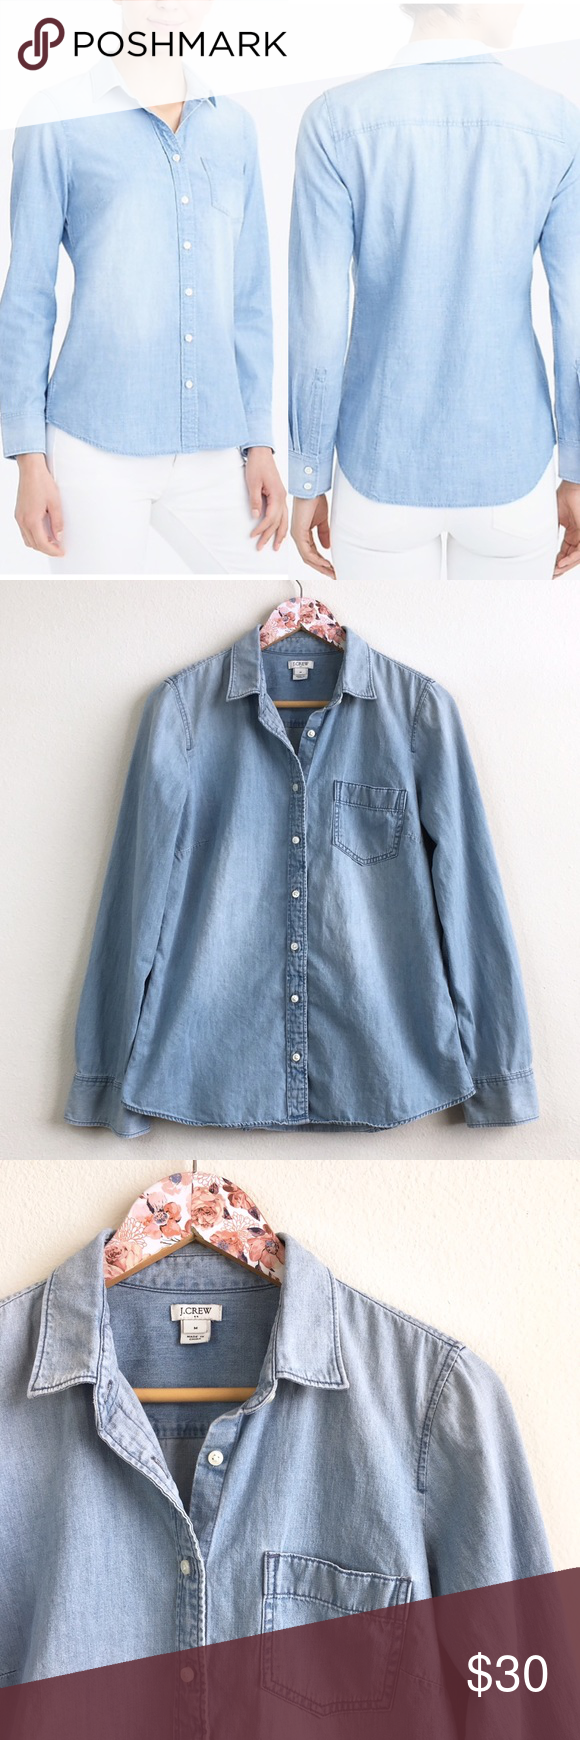 9a35ef4e J Crew Factory Chambray Shirt in Perfect Fit J Crew Factory Chambray Shirt  in Perfect Fit Size MEDIUM Excellent pre-owned condition Summer 2018 line  One ...